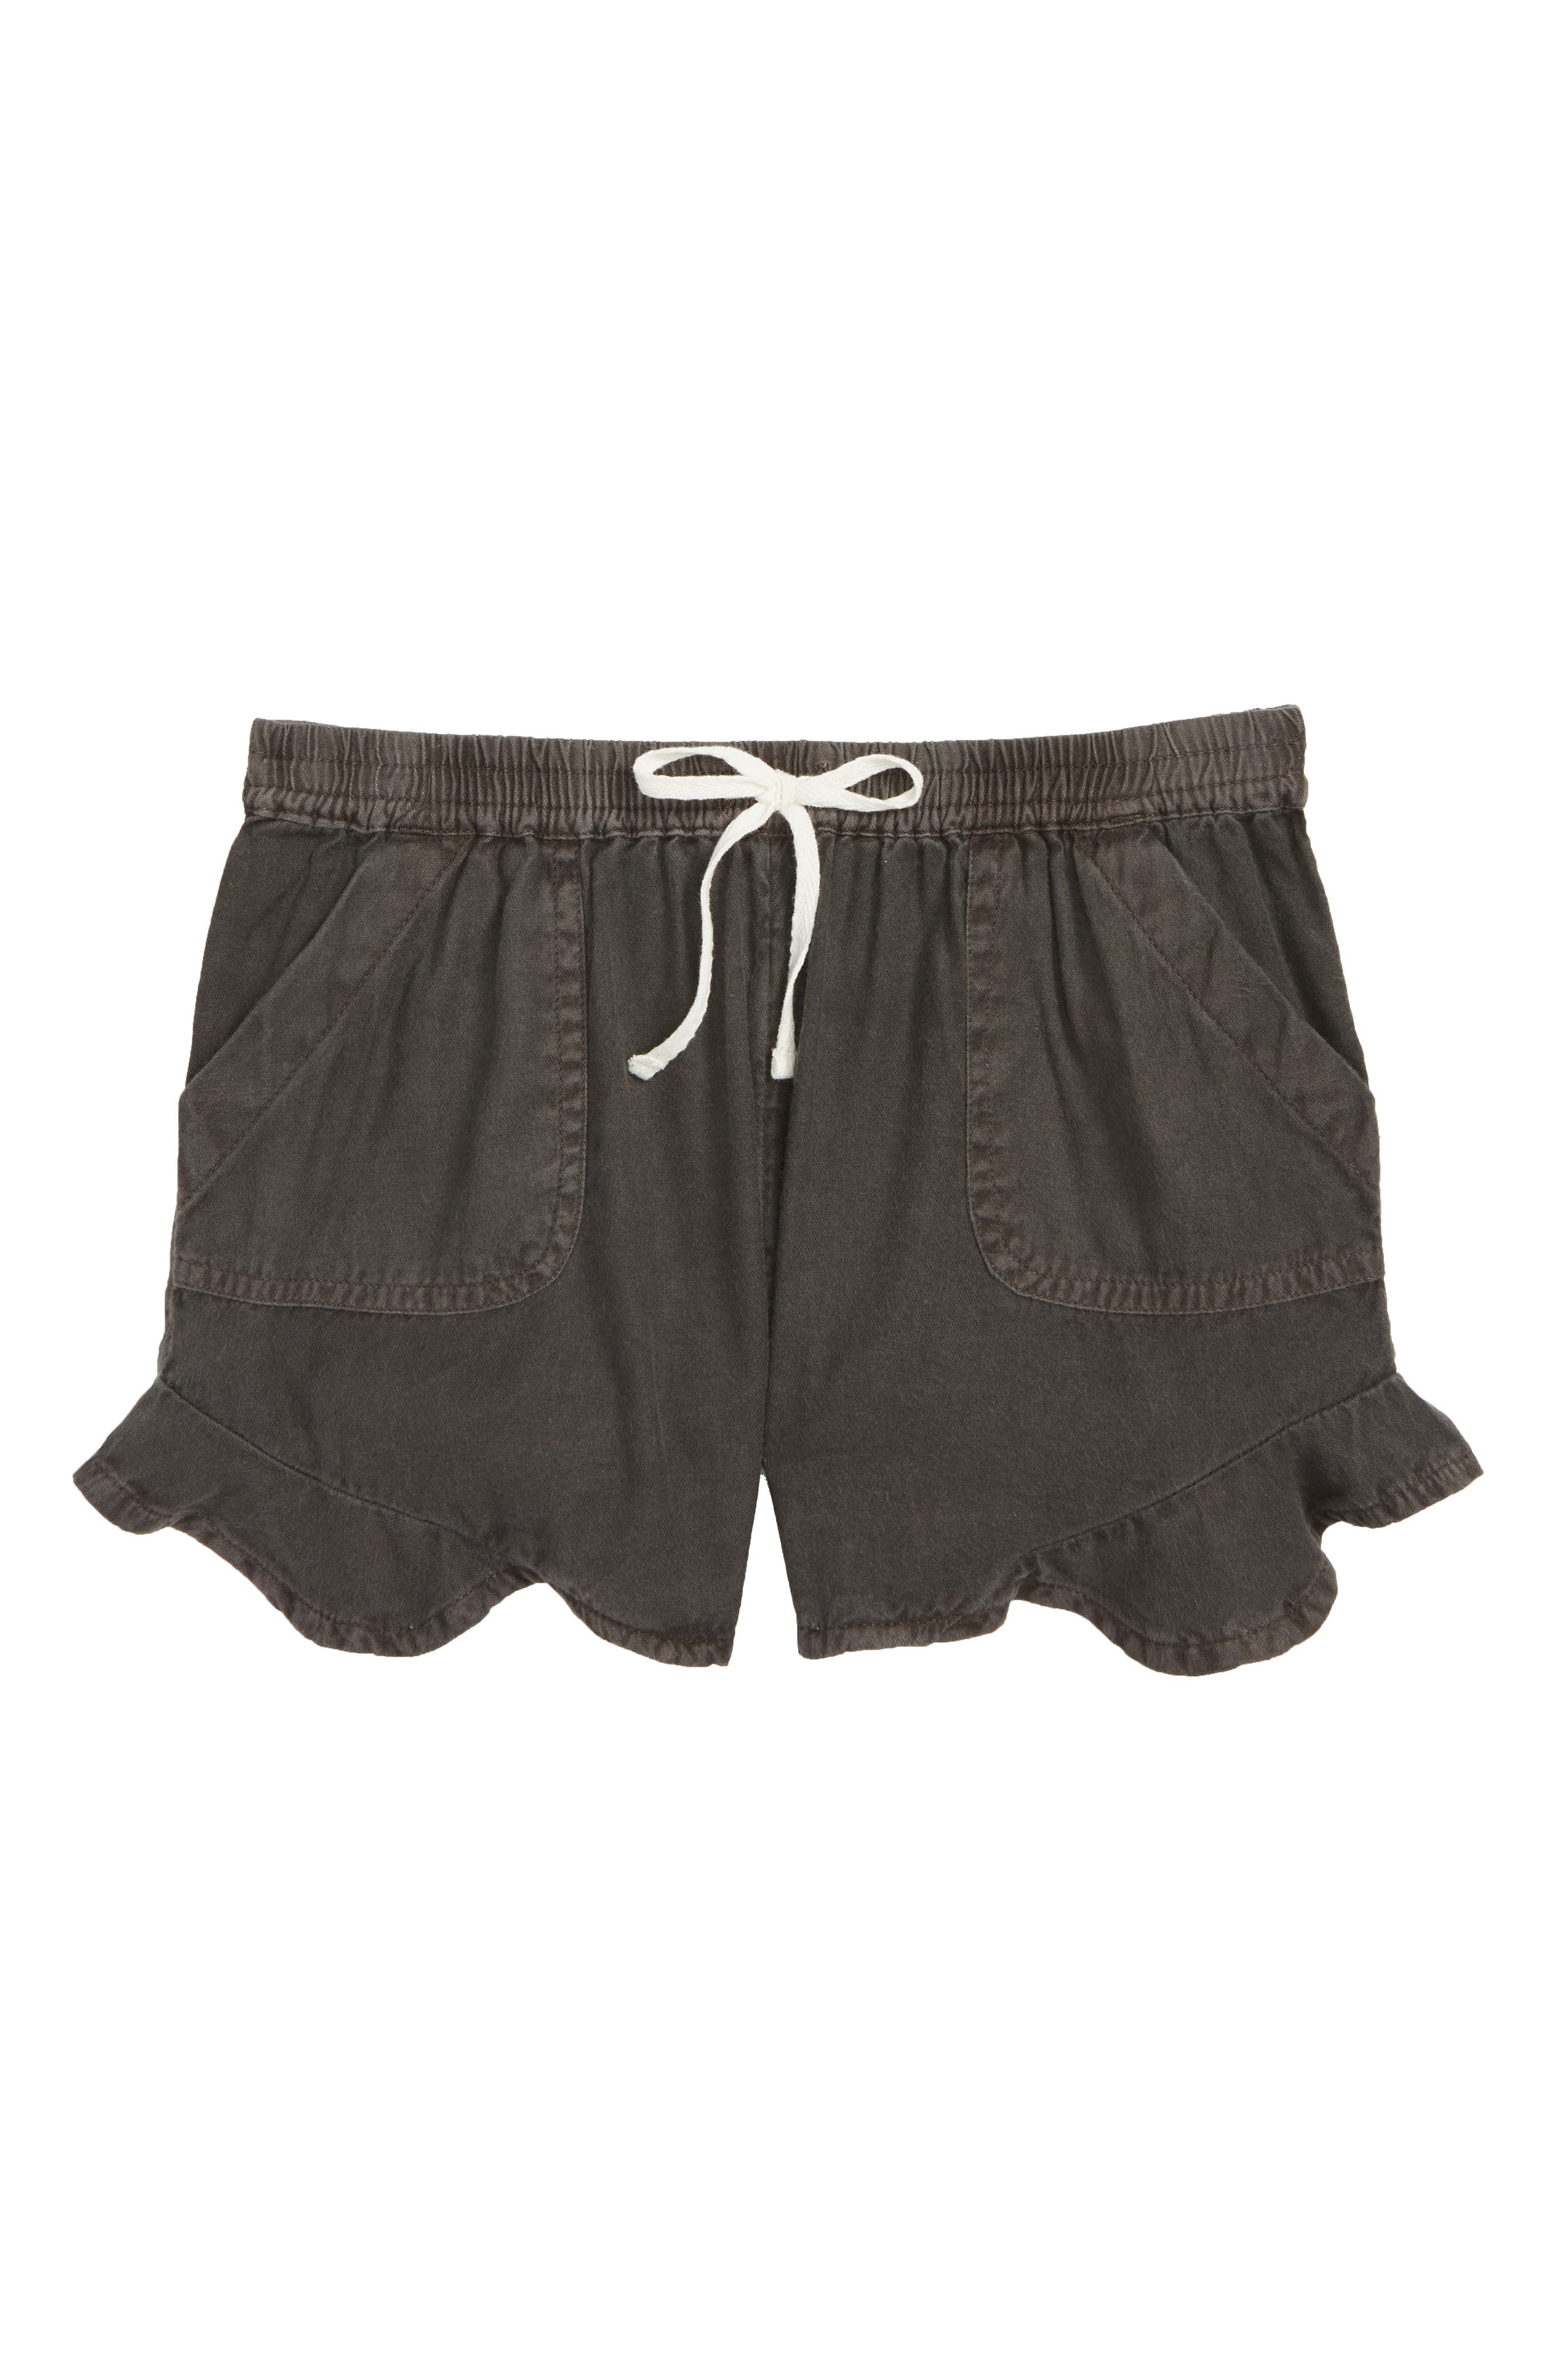 Mad For Summer Shorts,                         Main,                         color, Black